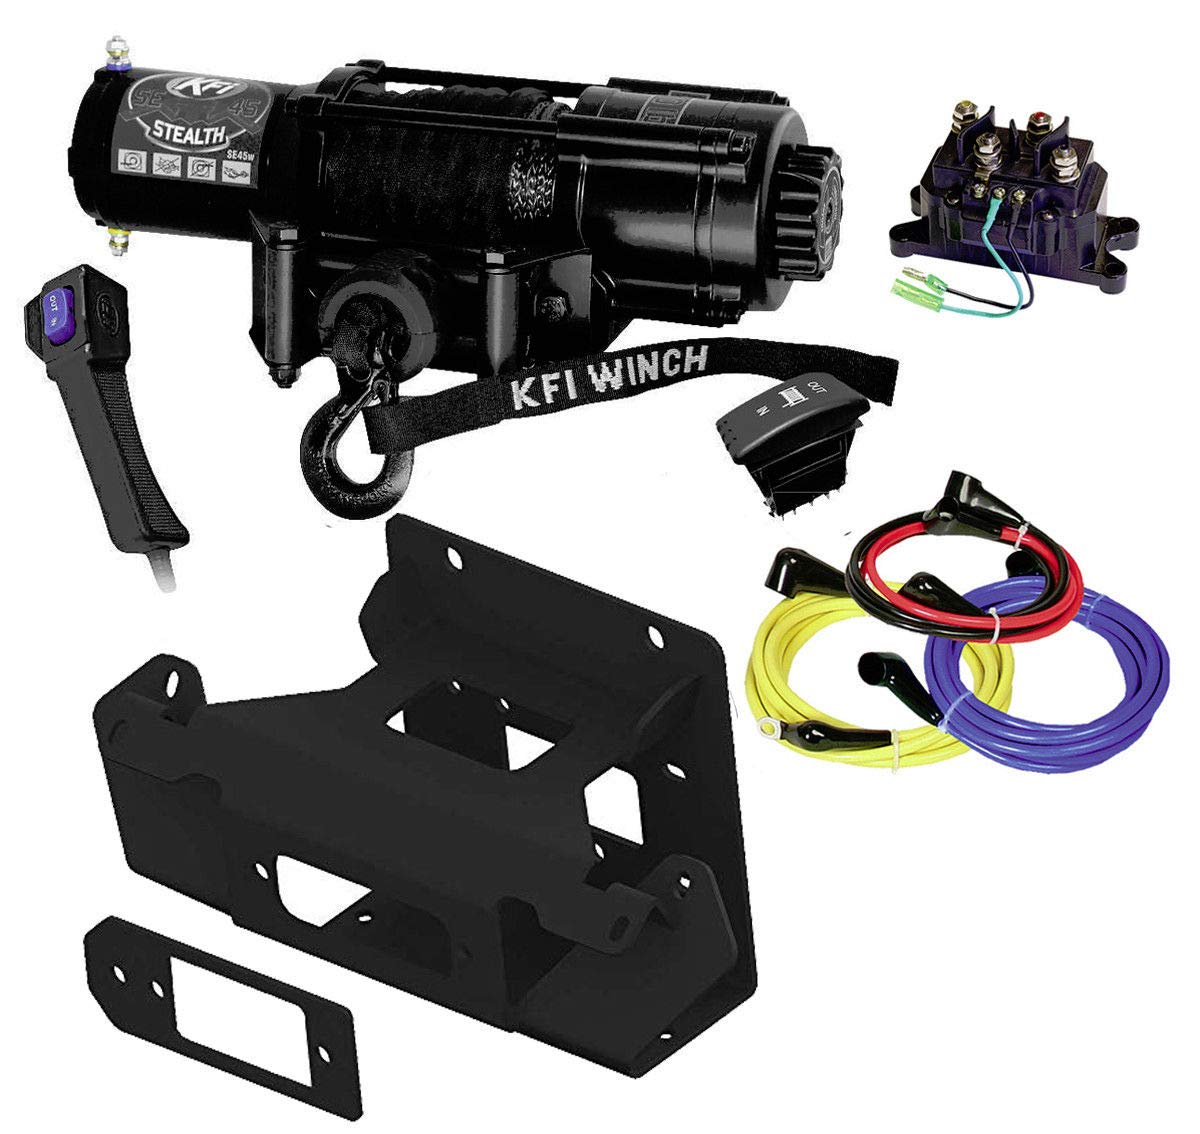 KFI Combo Kit - SE45w-R2 4500lbs Wide Stealth Winch, 101520 Mount Bracket, Wiring, Switches, Remote - Can-Am Maverick X3 & X3 Max